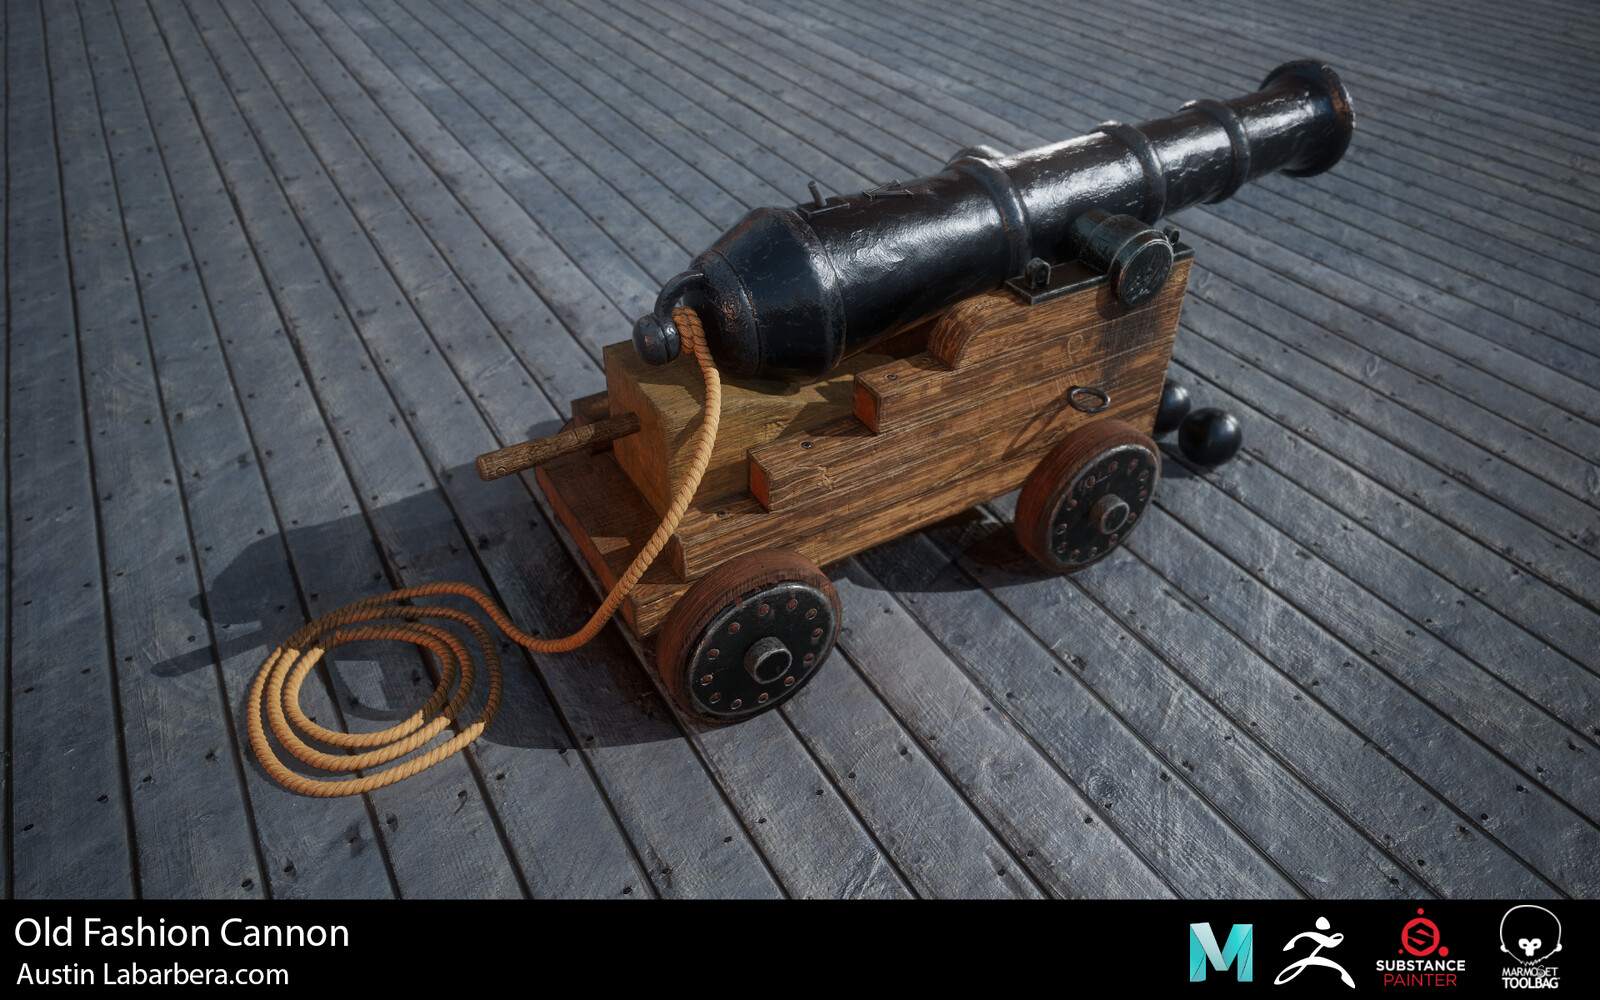 Old-Fashioned Cannon